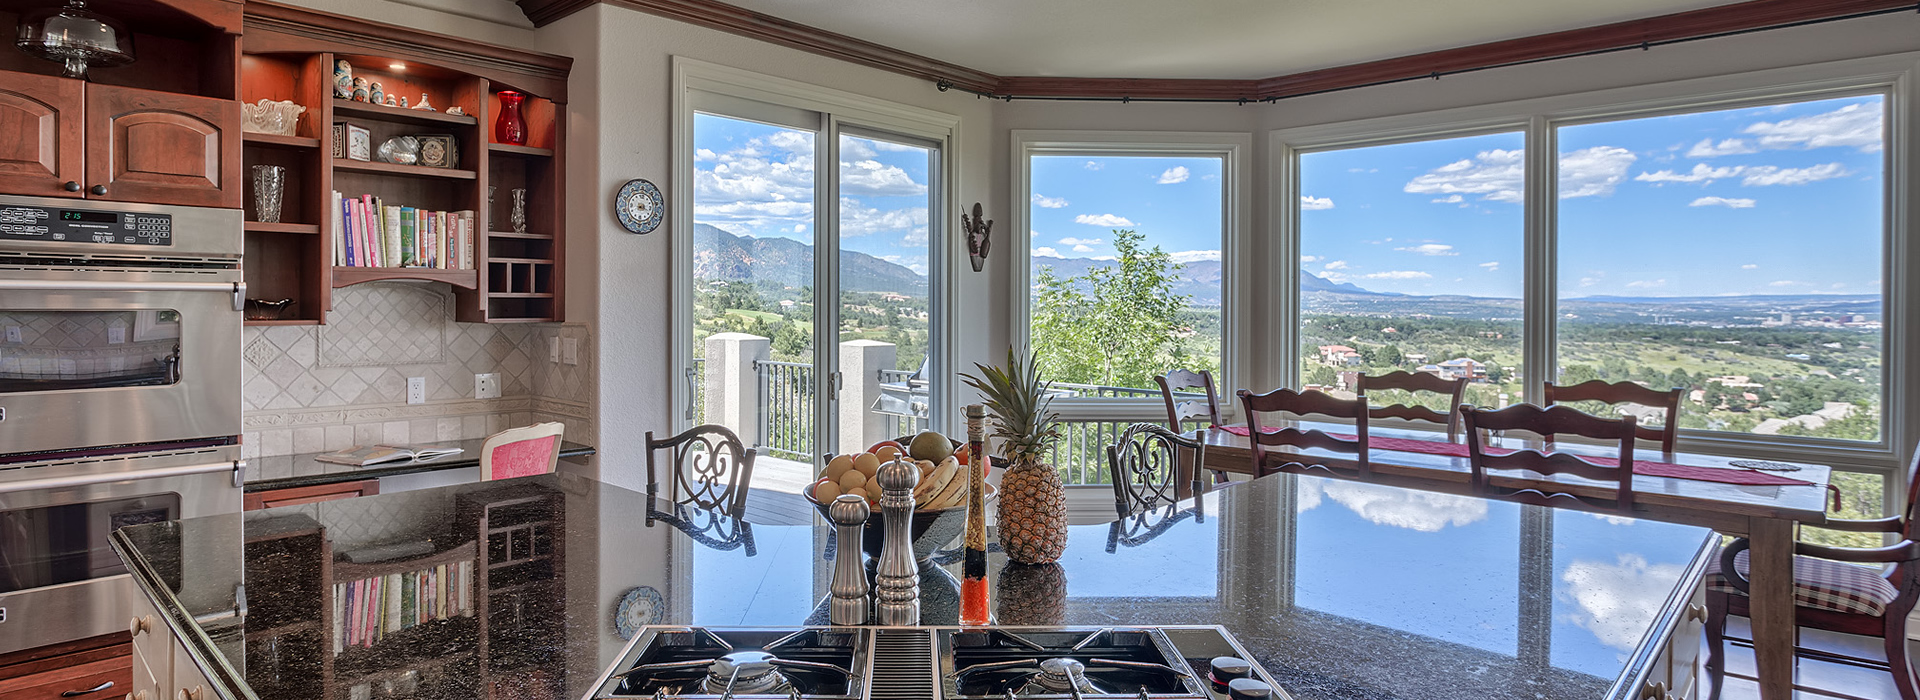 Colorado Springs Luxury Kitchen